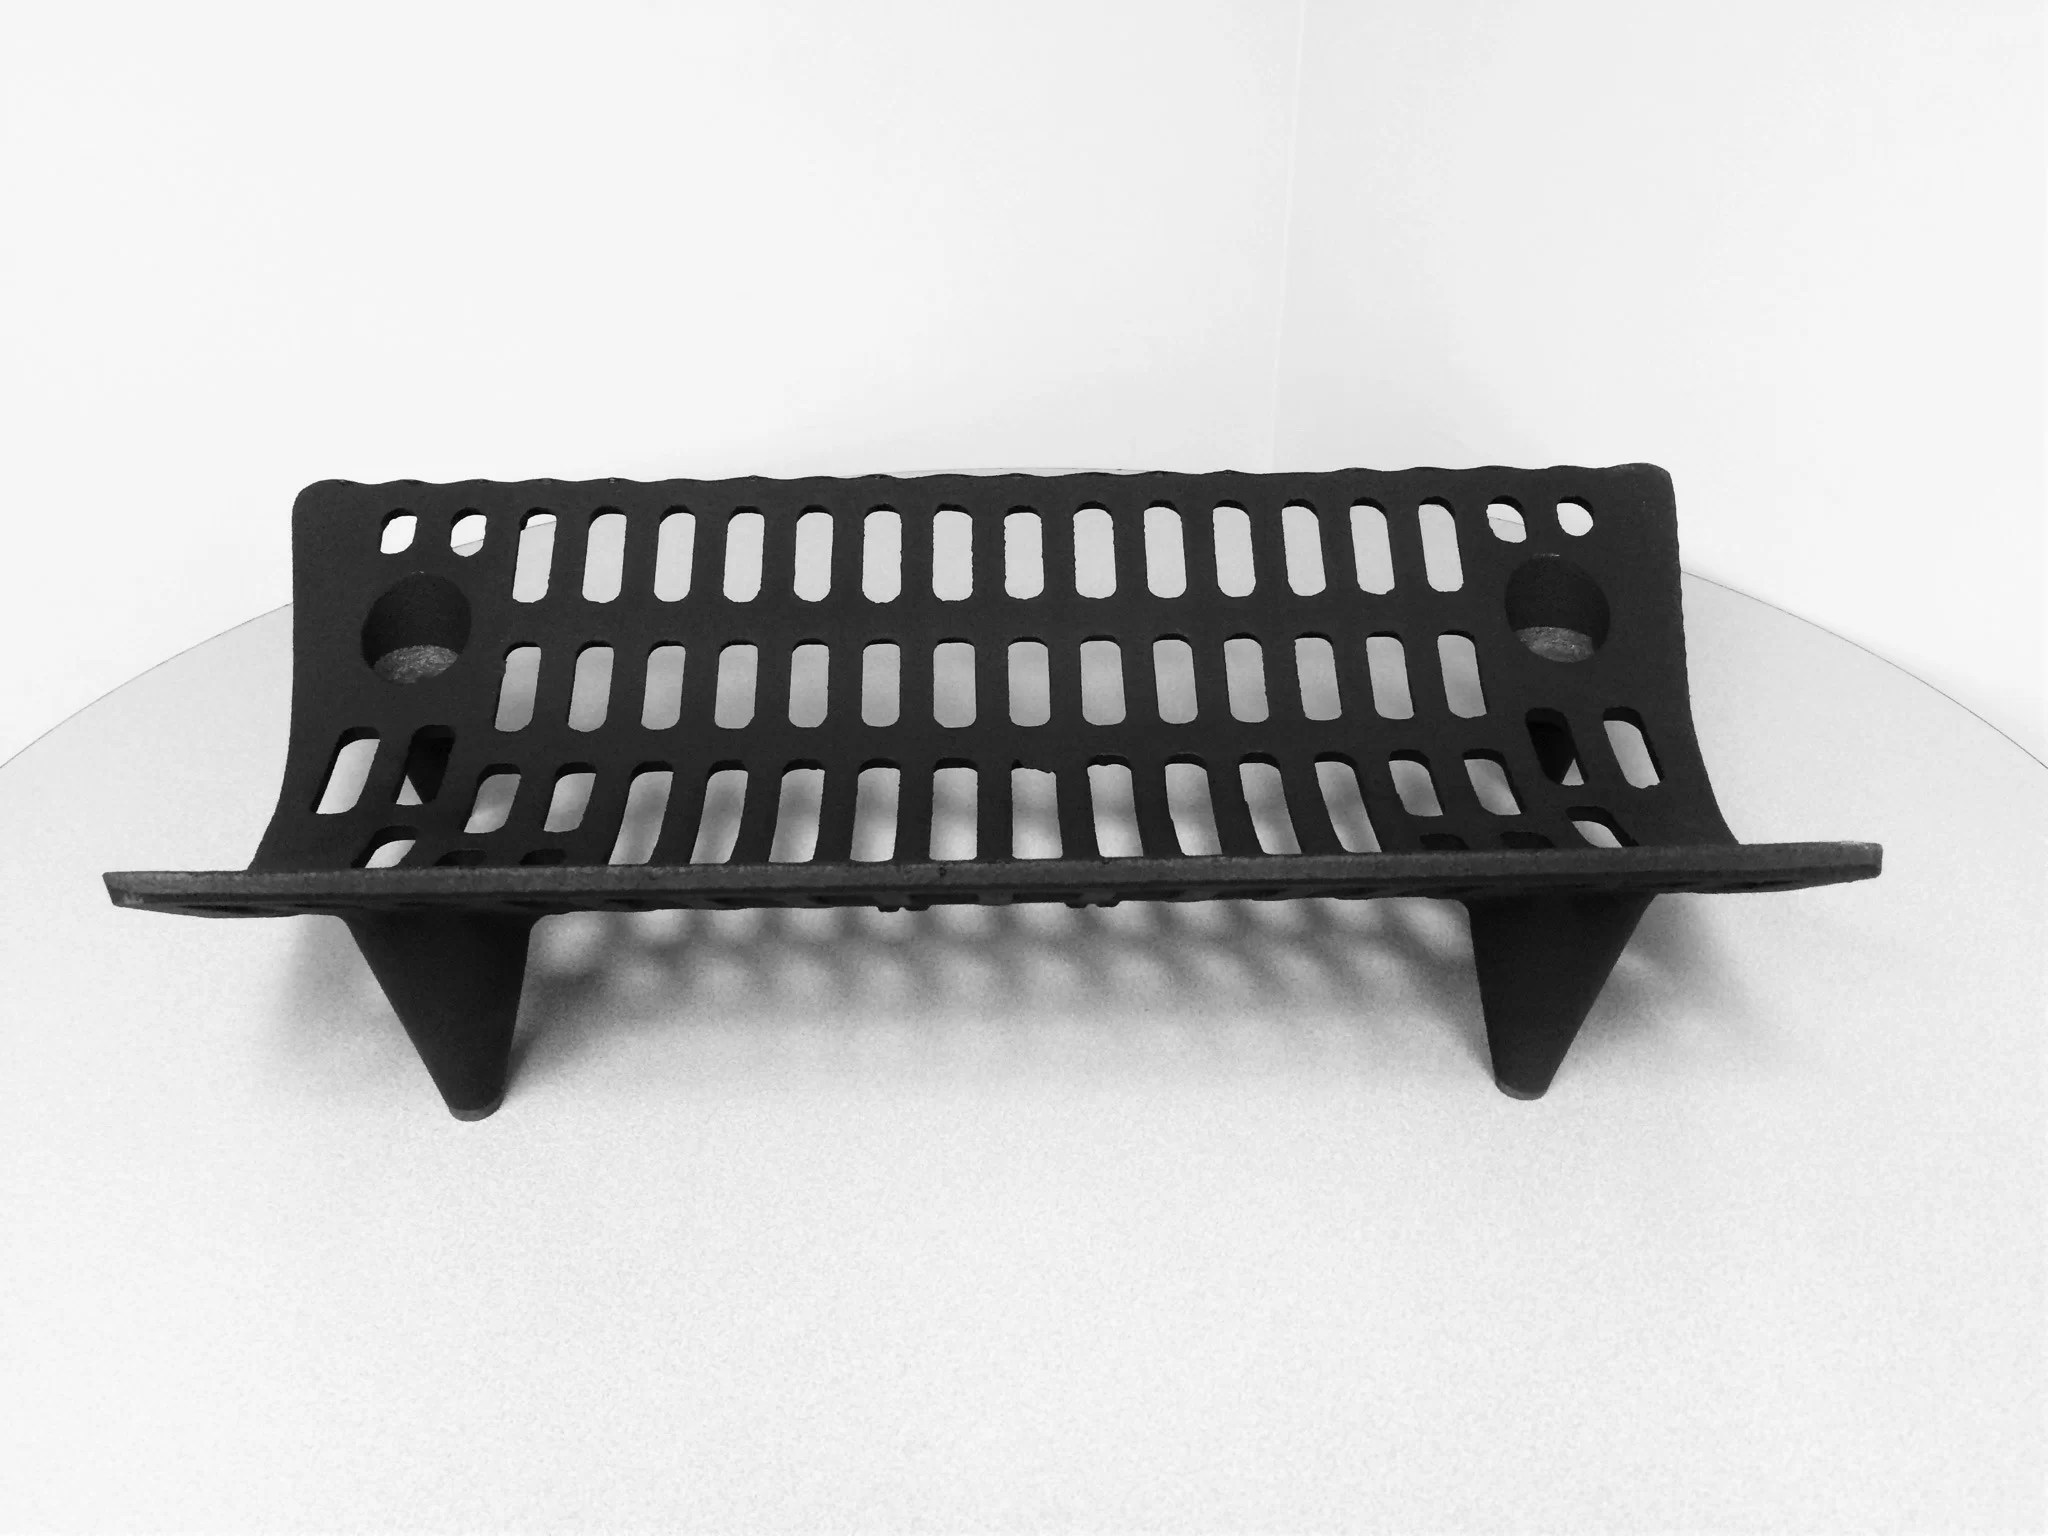 Fireplace Grate Blowers Wood Burning Fireplace Grate